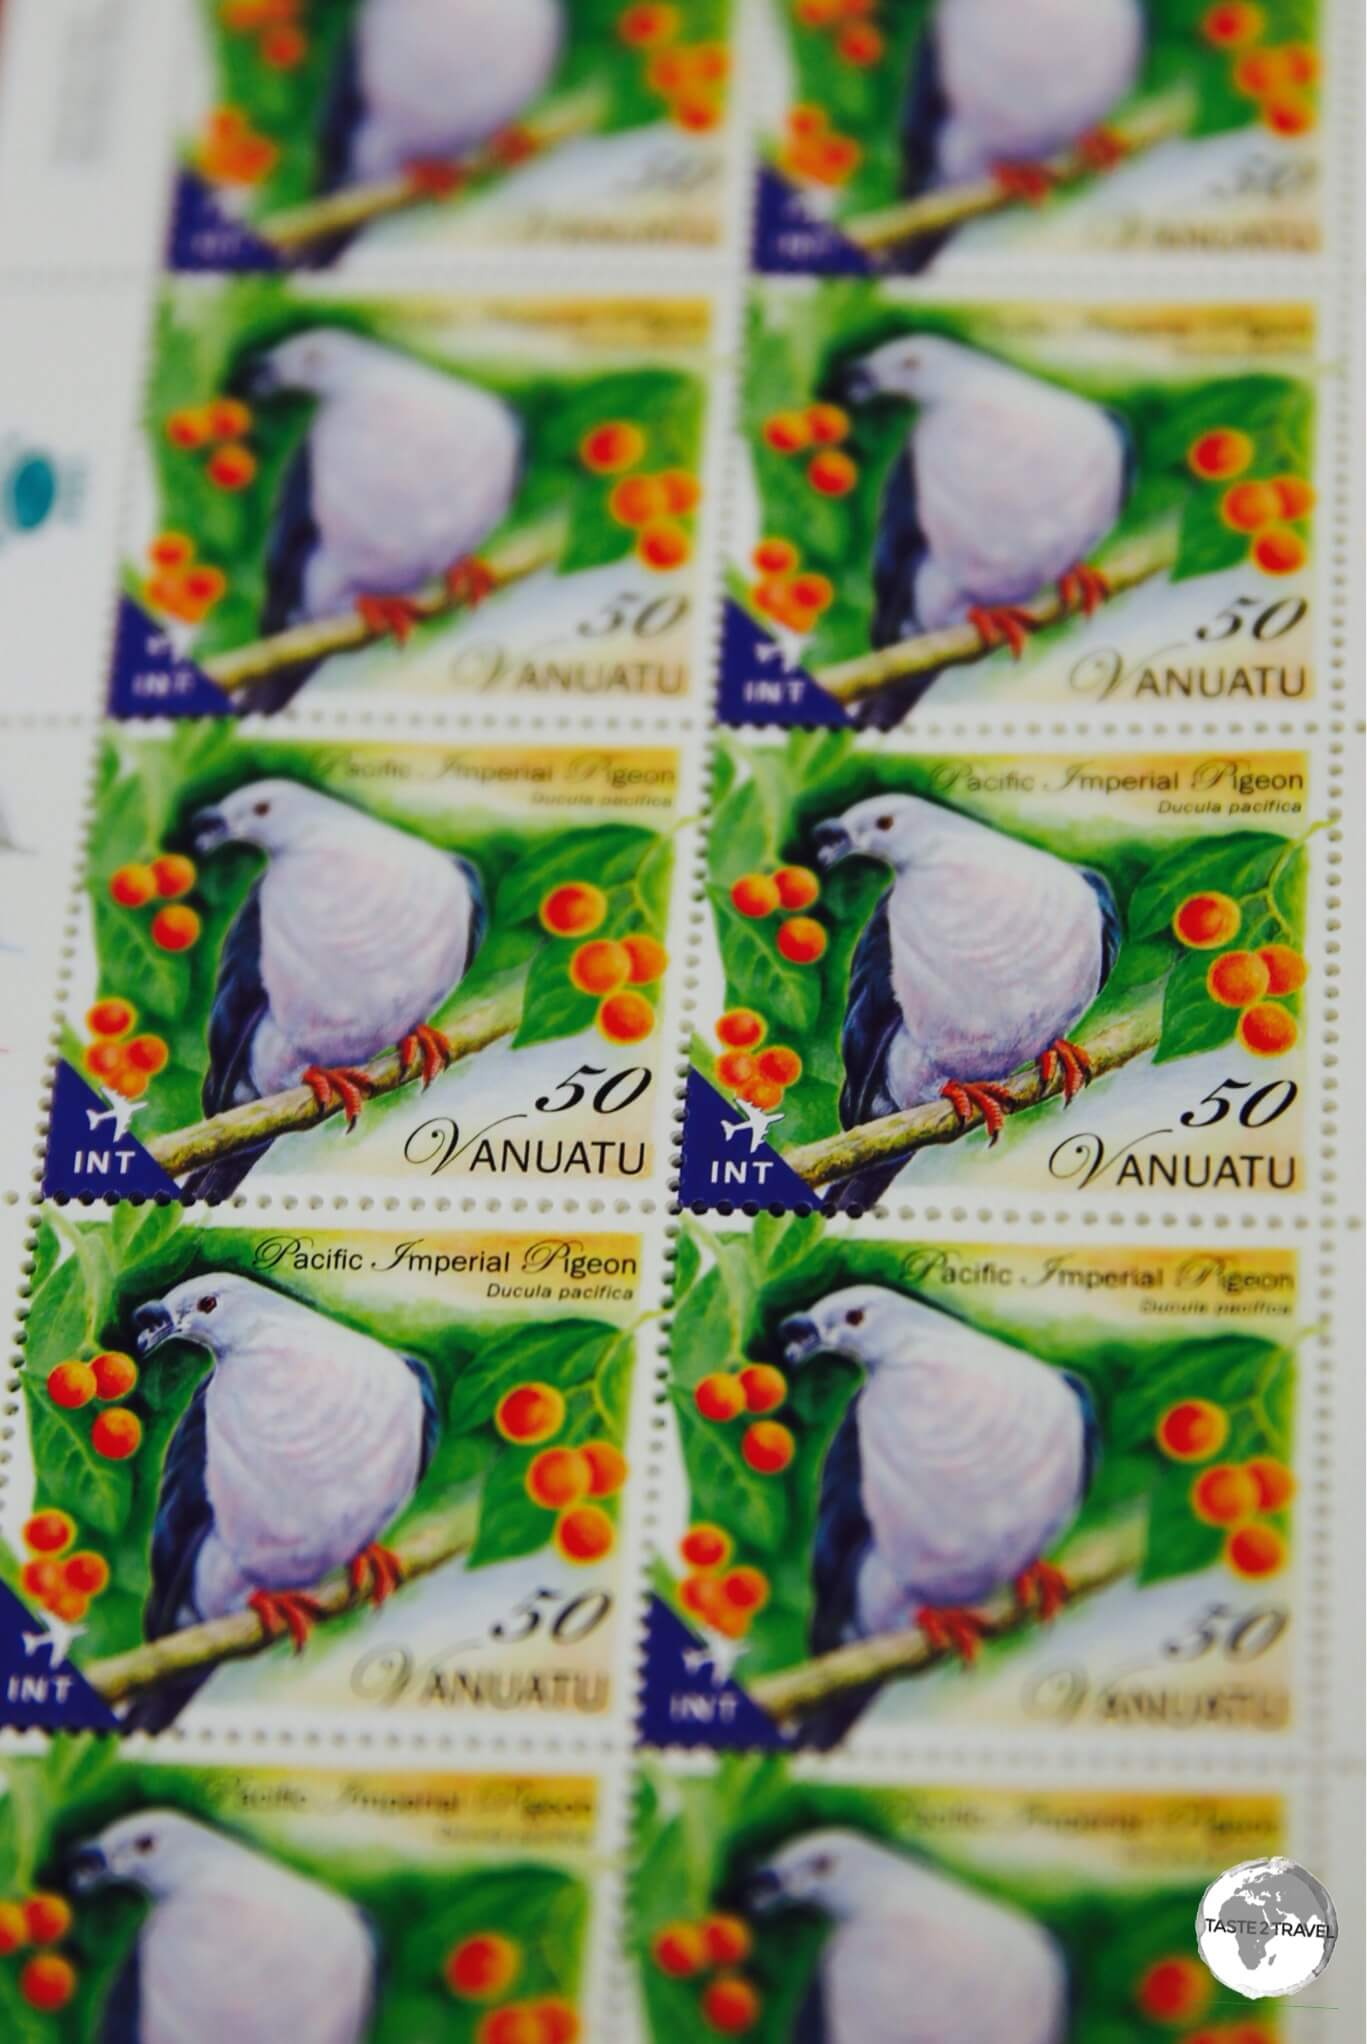 Stamps from Vanuatu feature local fauna and flora.